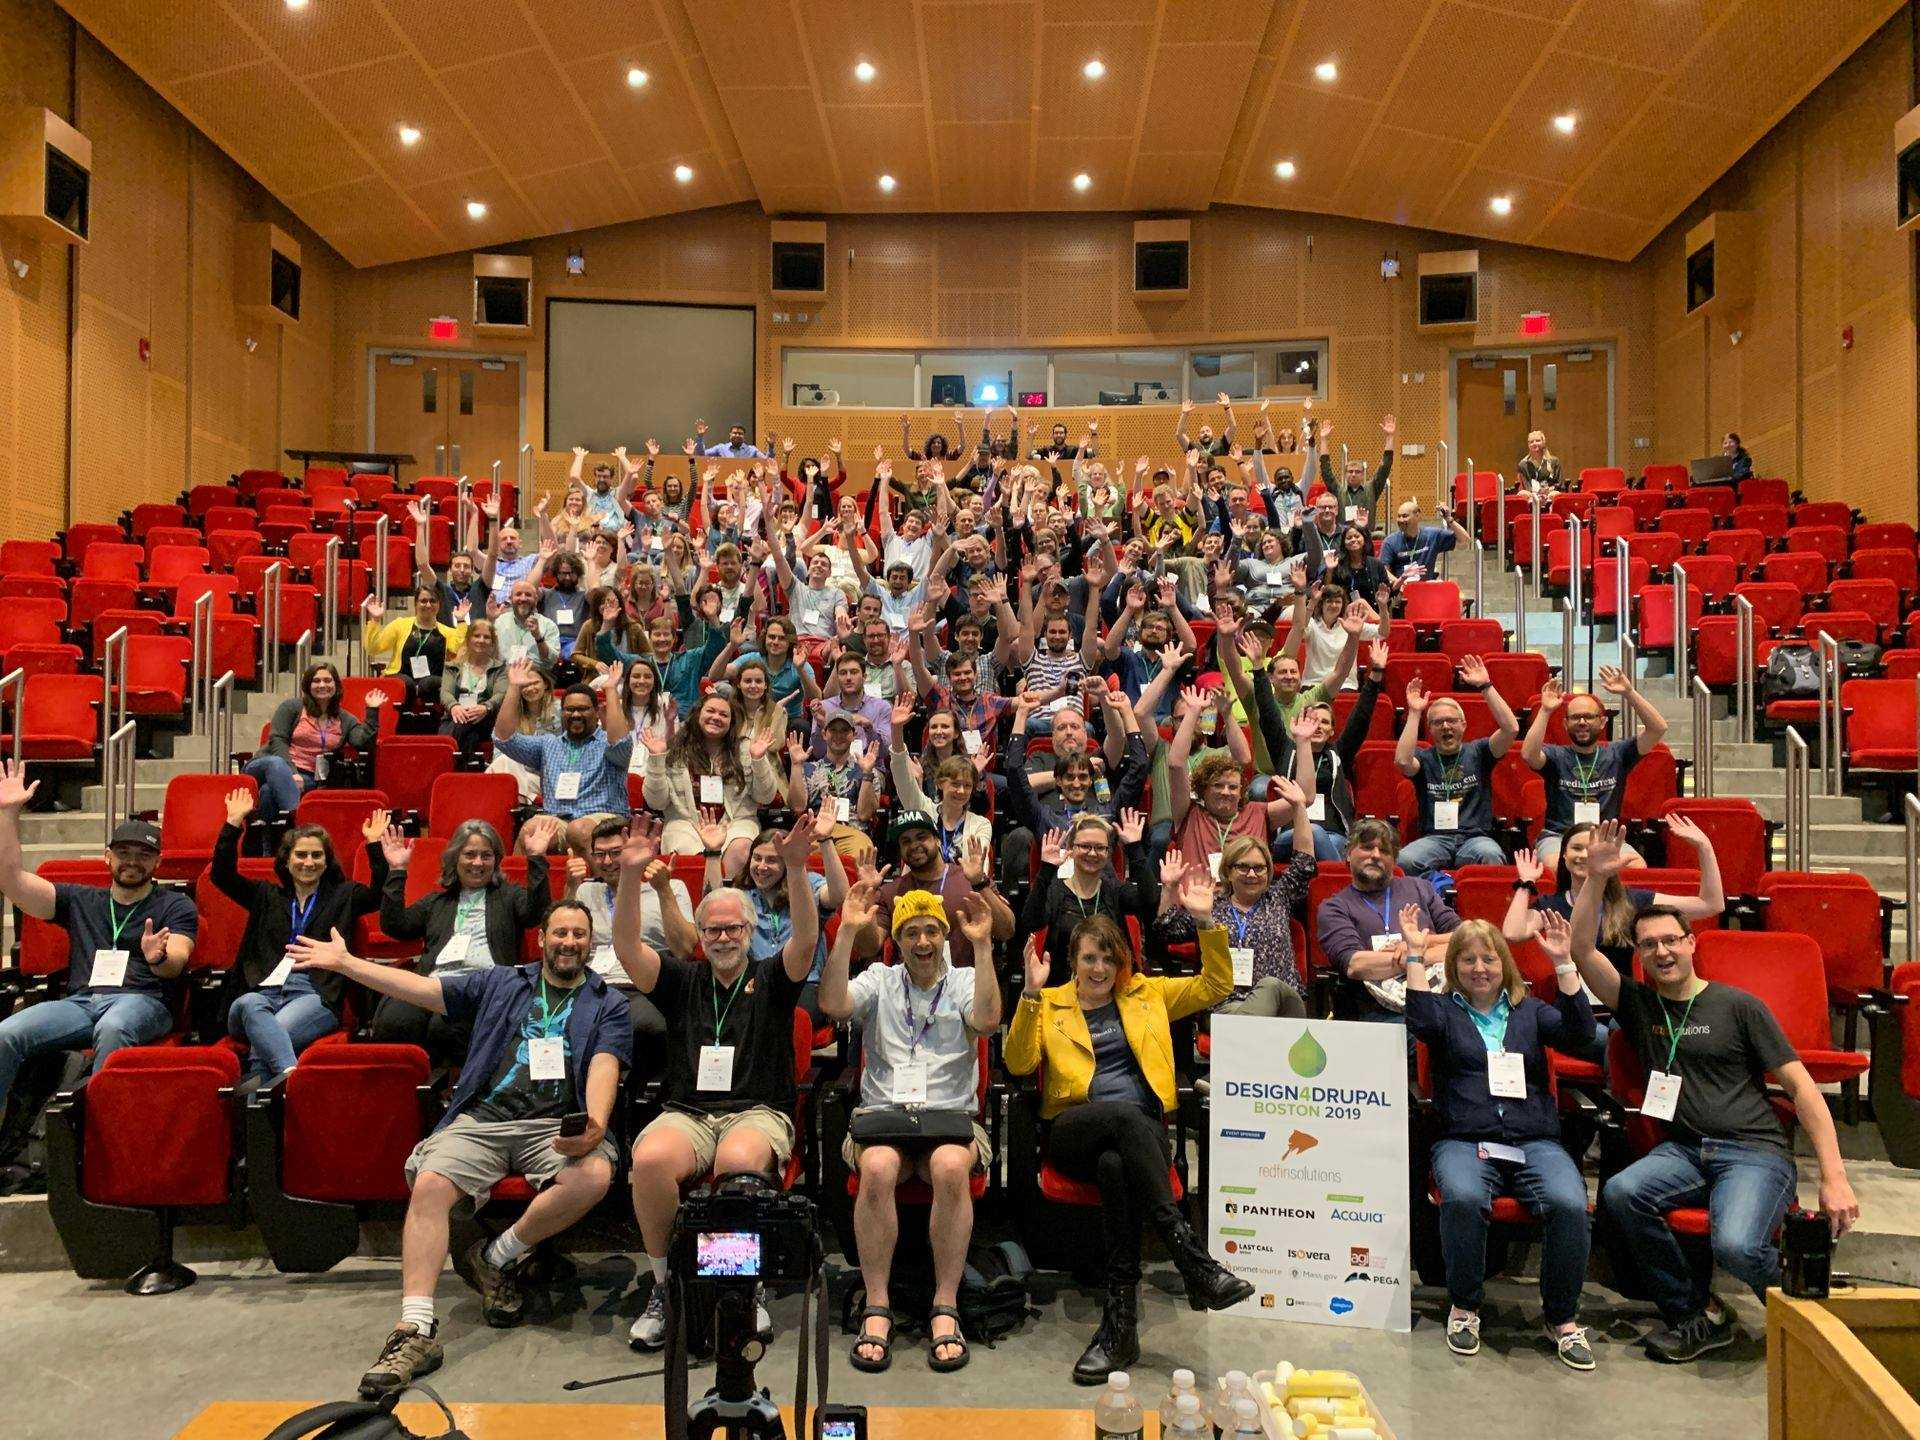 Design 4 Drupal, Boston 2019 attendees in a lecture hall